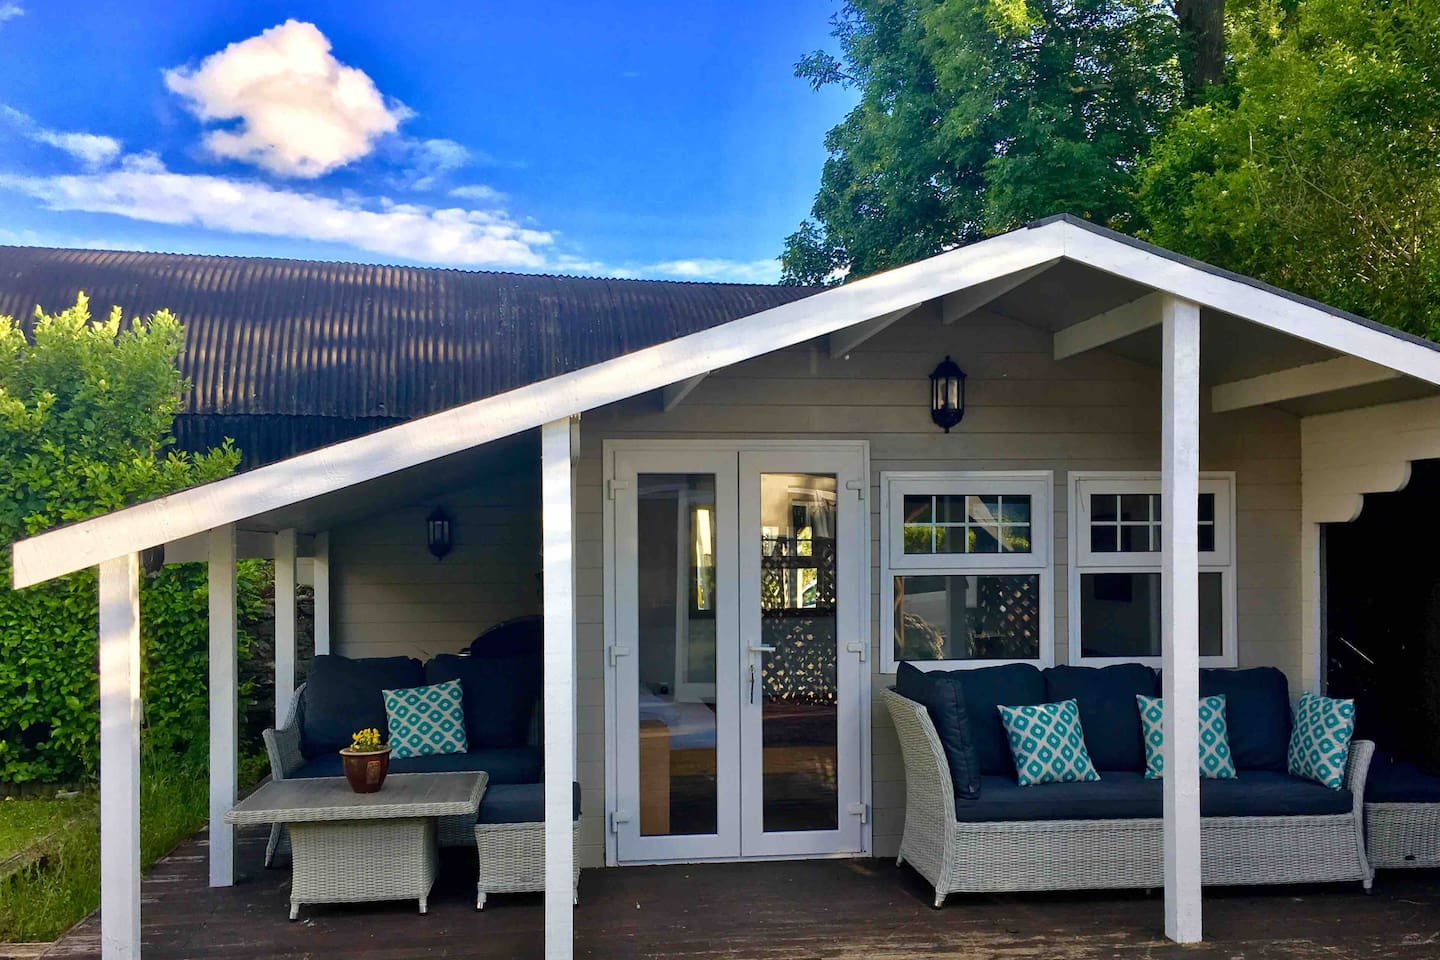 Summer house entrance & veranda with seating